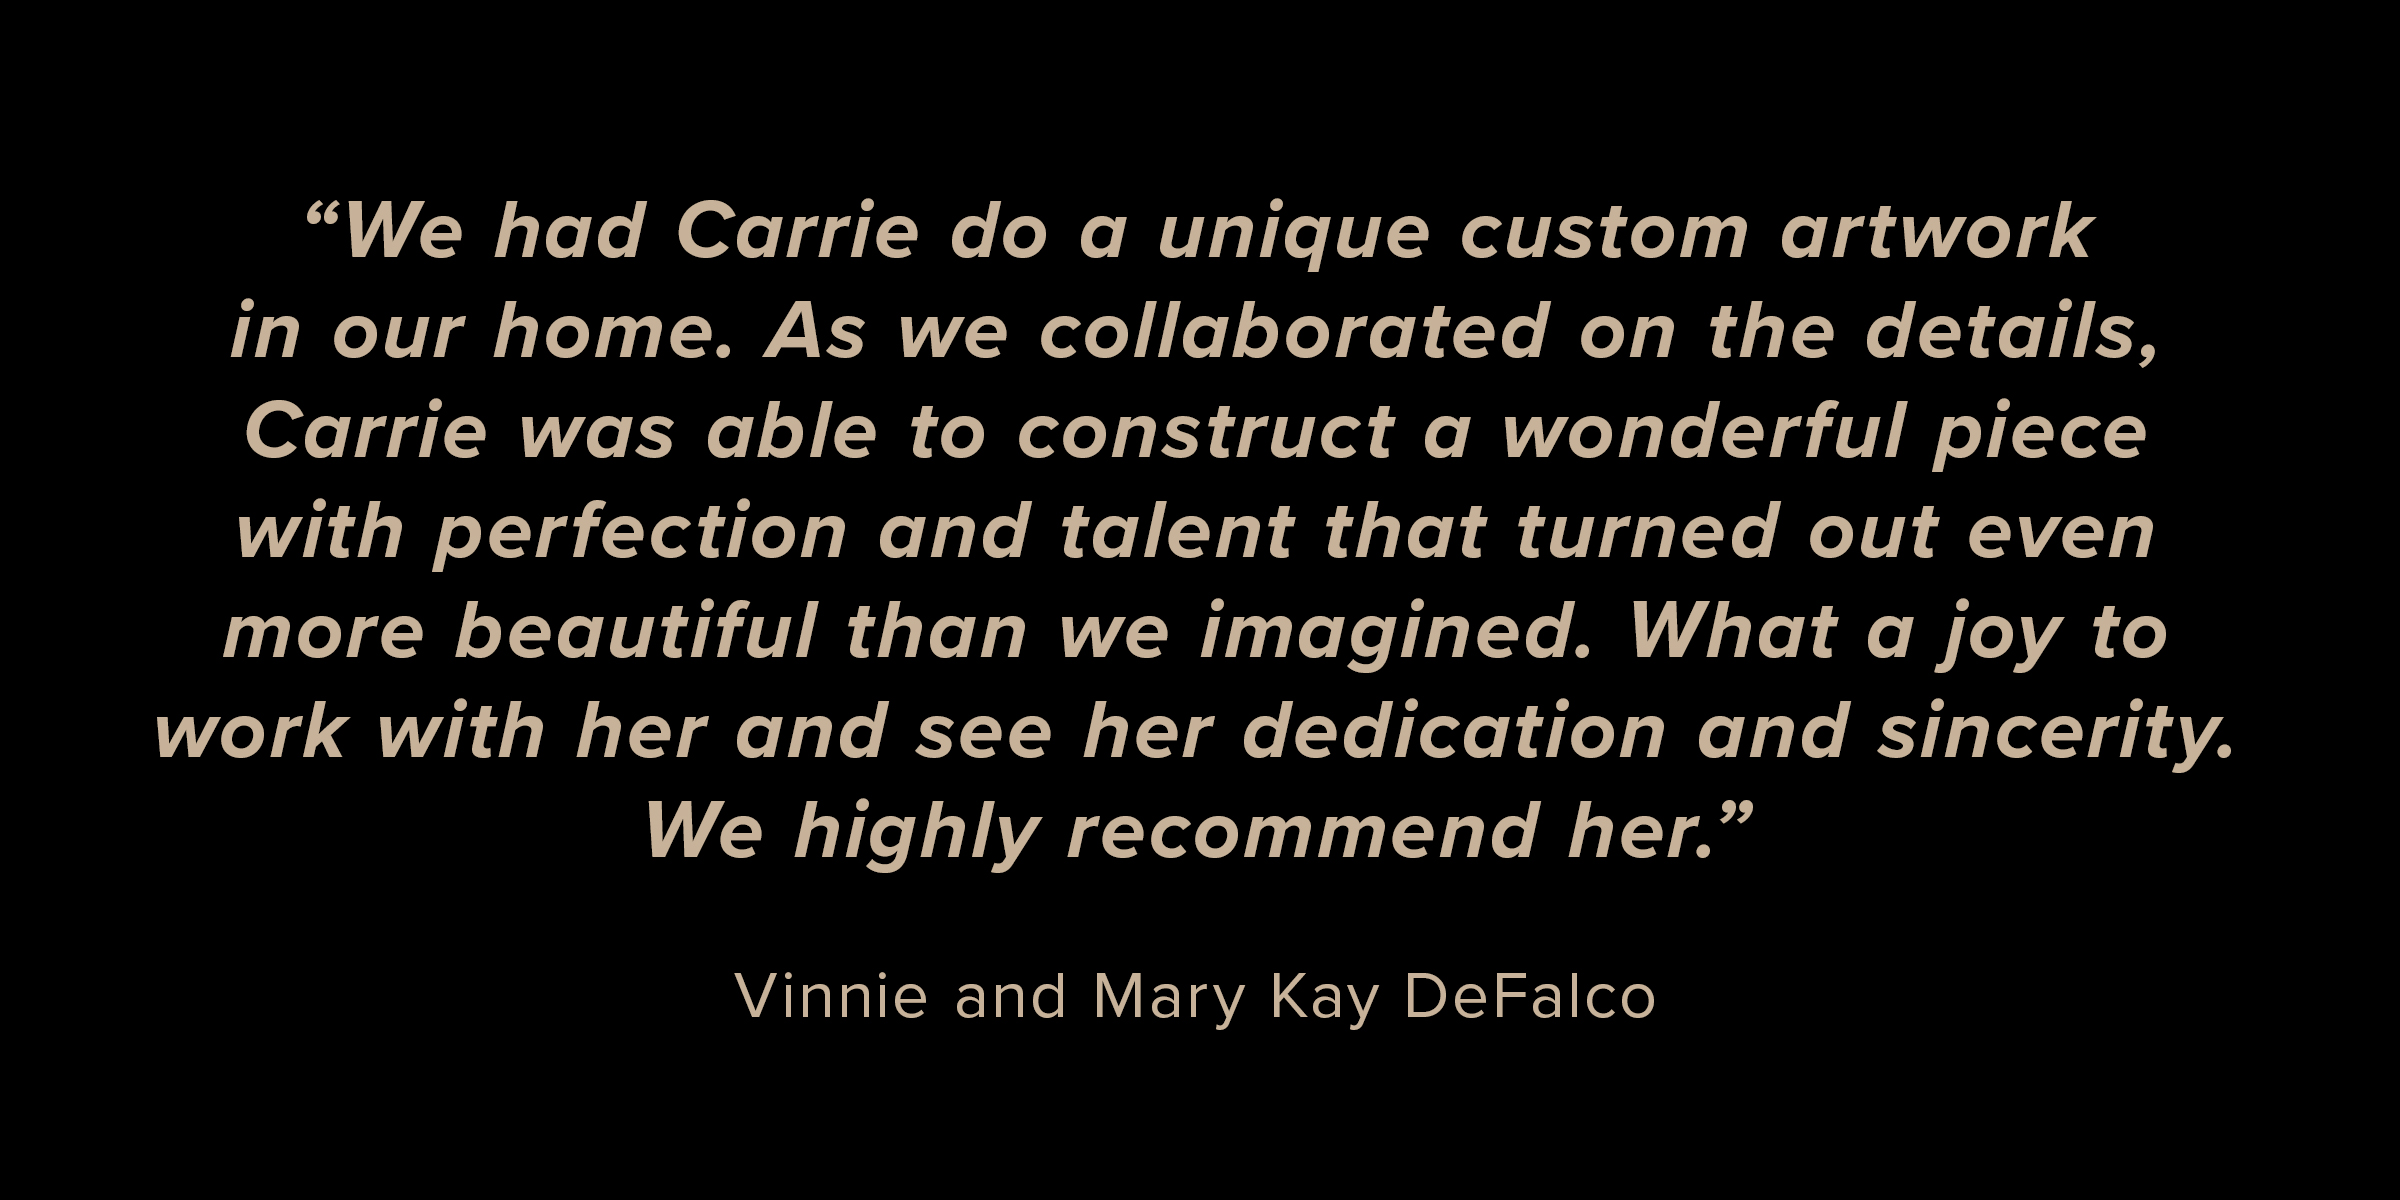 Vinnie and Mary Kay DeFalco.jpg